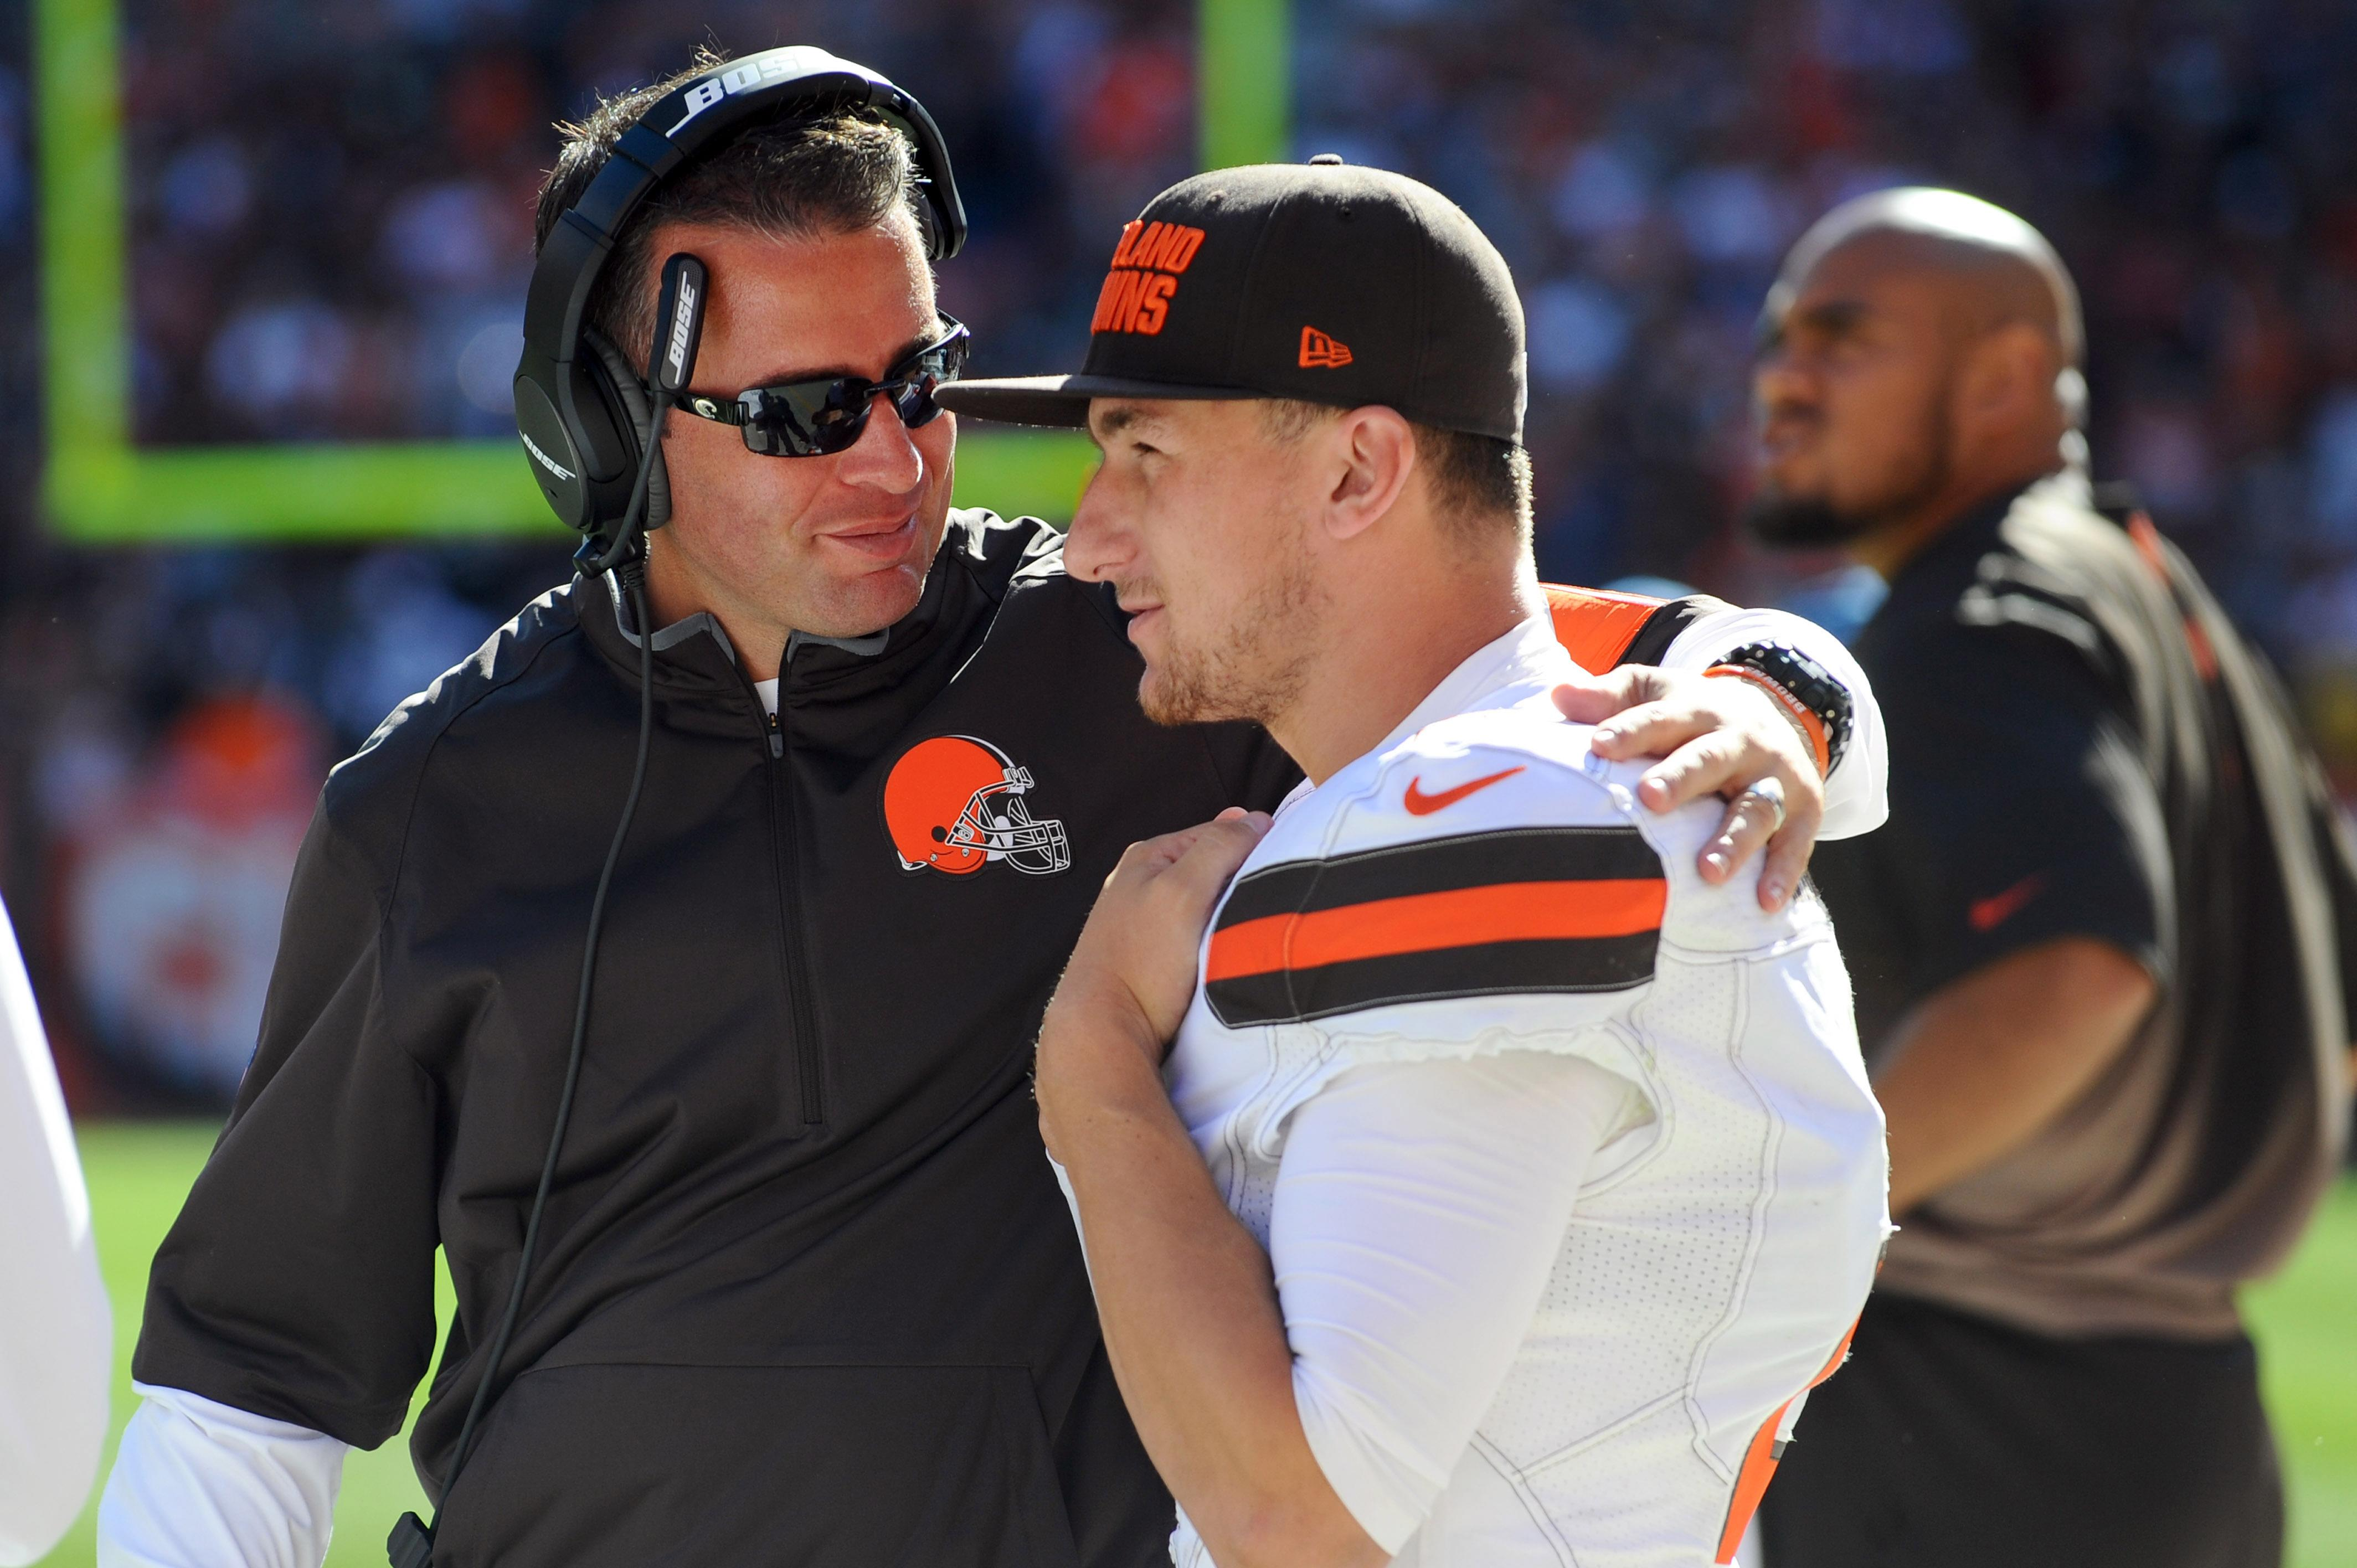 Report: Johnny Manziel showed up drunk to practice and the Browns covered it up by saying he had a concussion